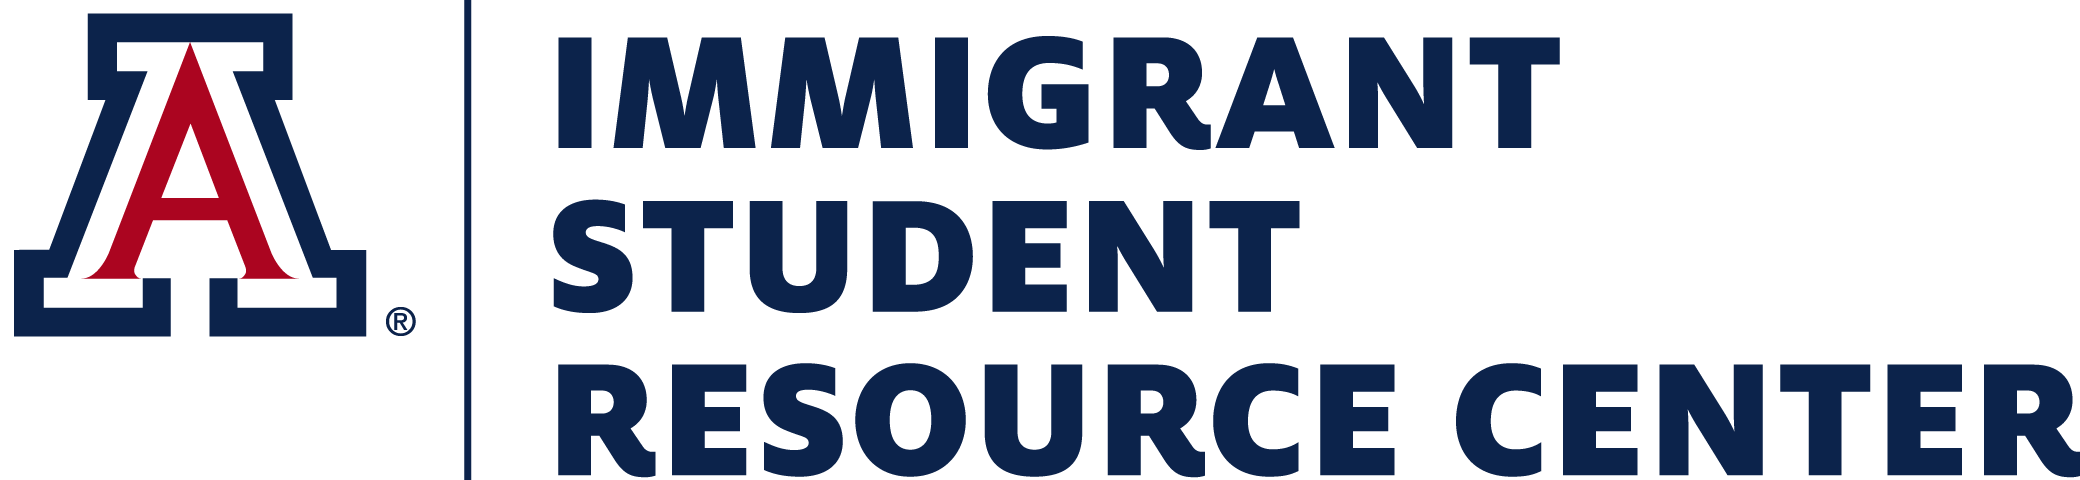 Immigrant Student Resource Center | Home